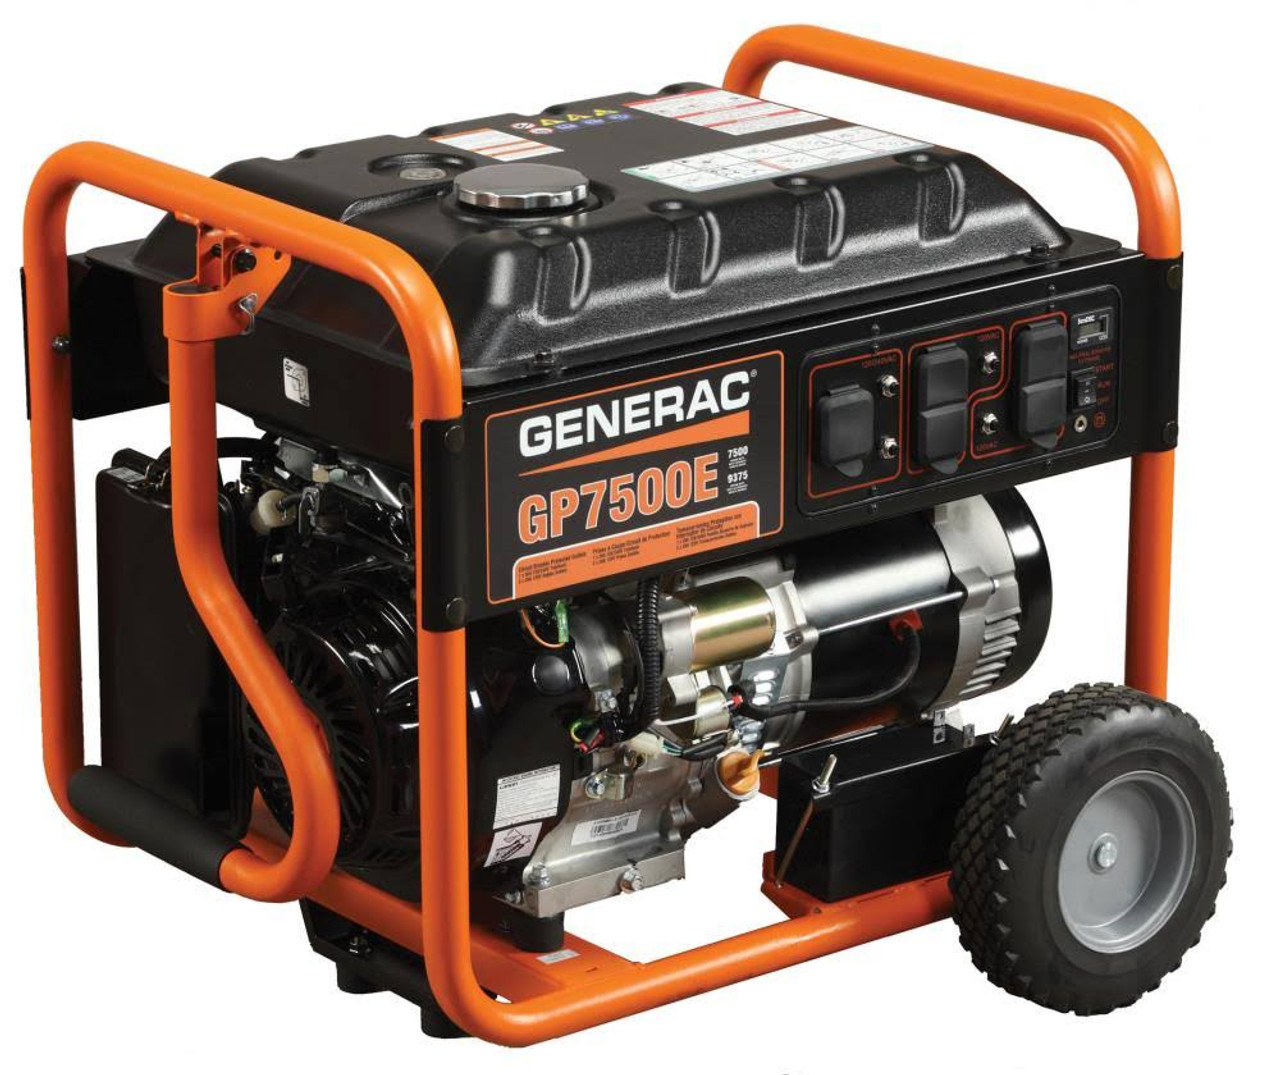 hight resolution of generac 5943 7500 running watts gas powered portable generator carb compliant